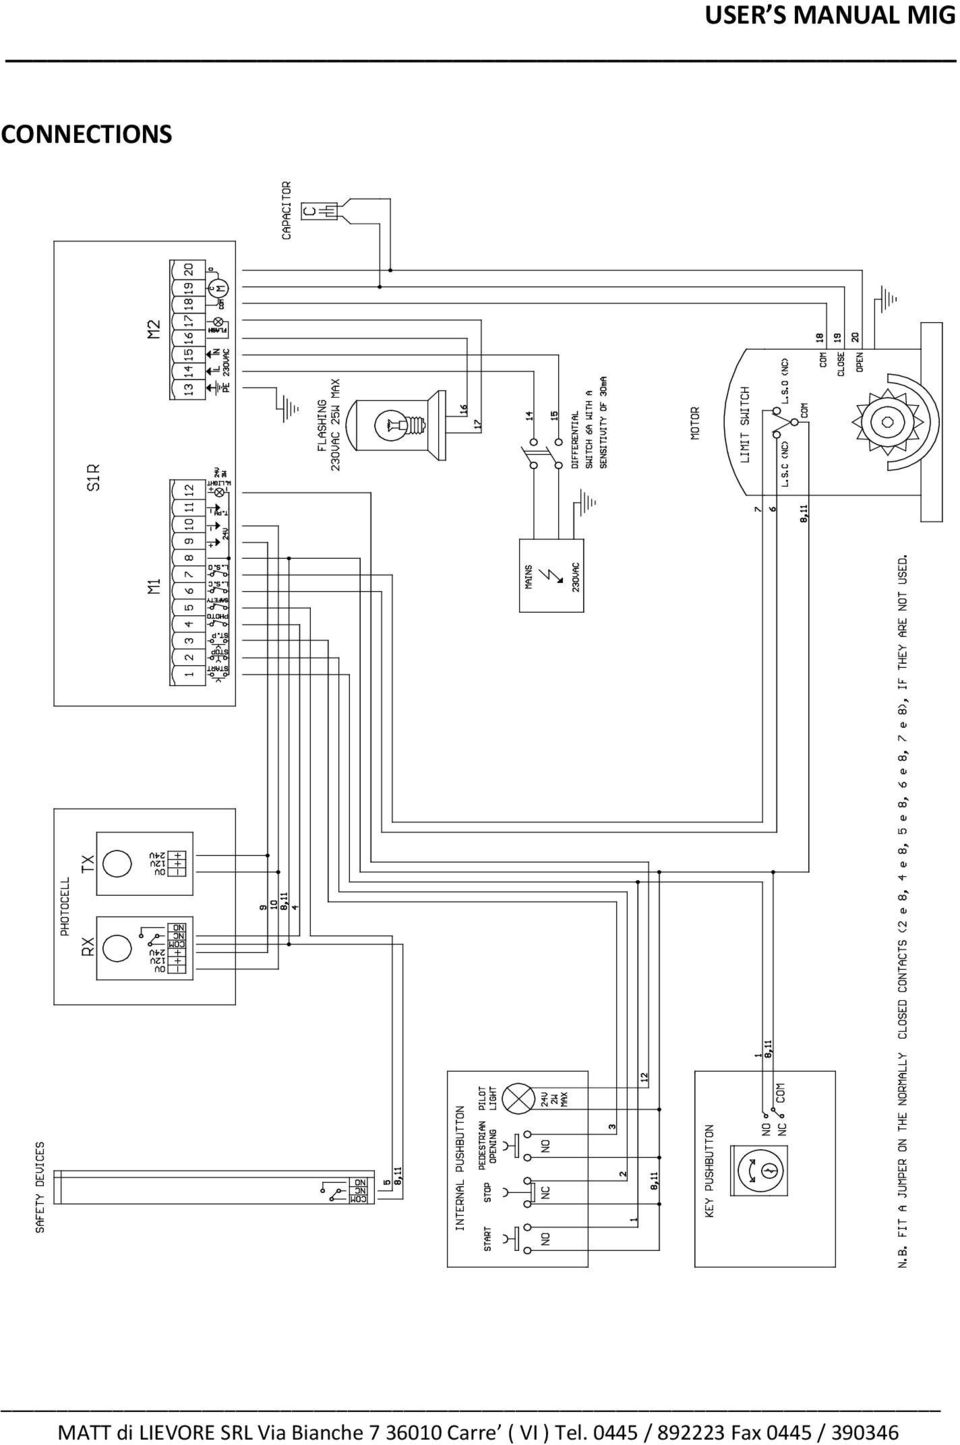 Sliding Gate Operators Pdf Electric Motor Wiring Furthermore Diagram For Apollo 20 Connections